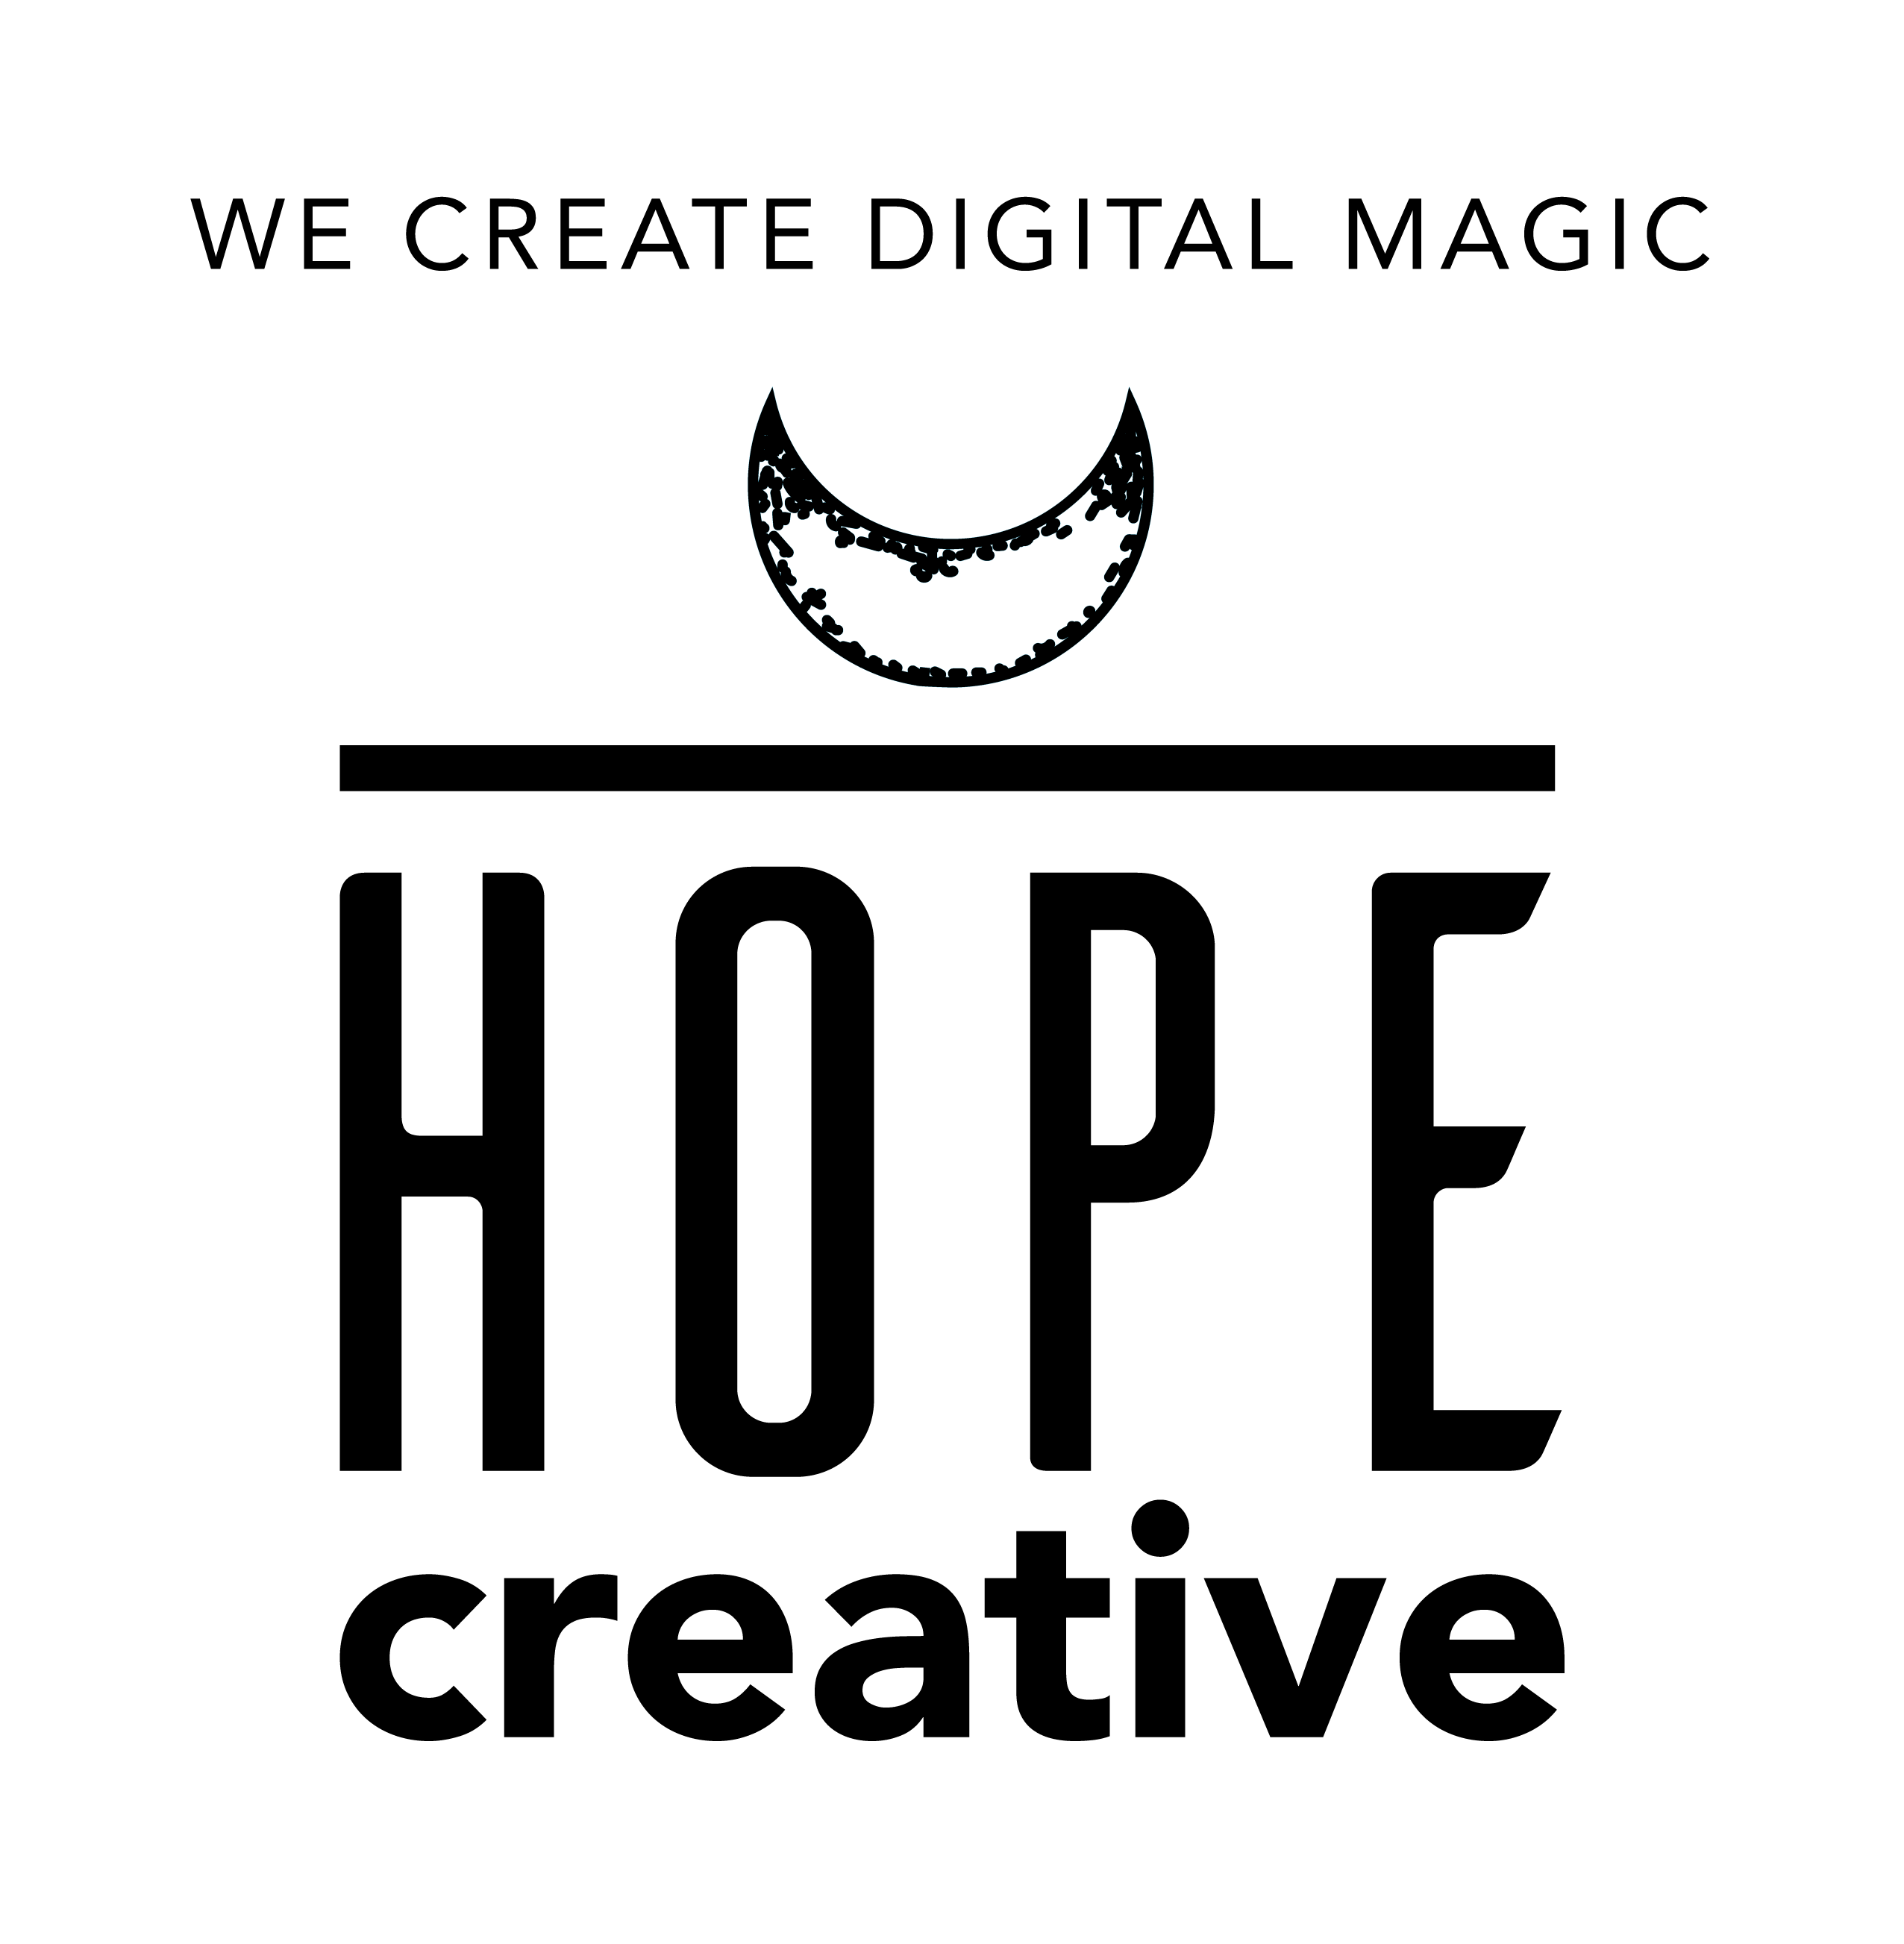 https://hopecreative.co/